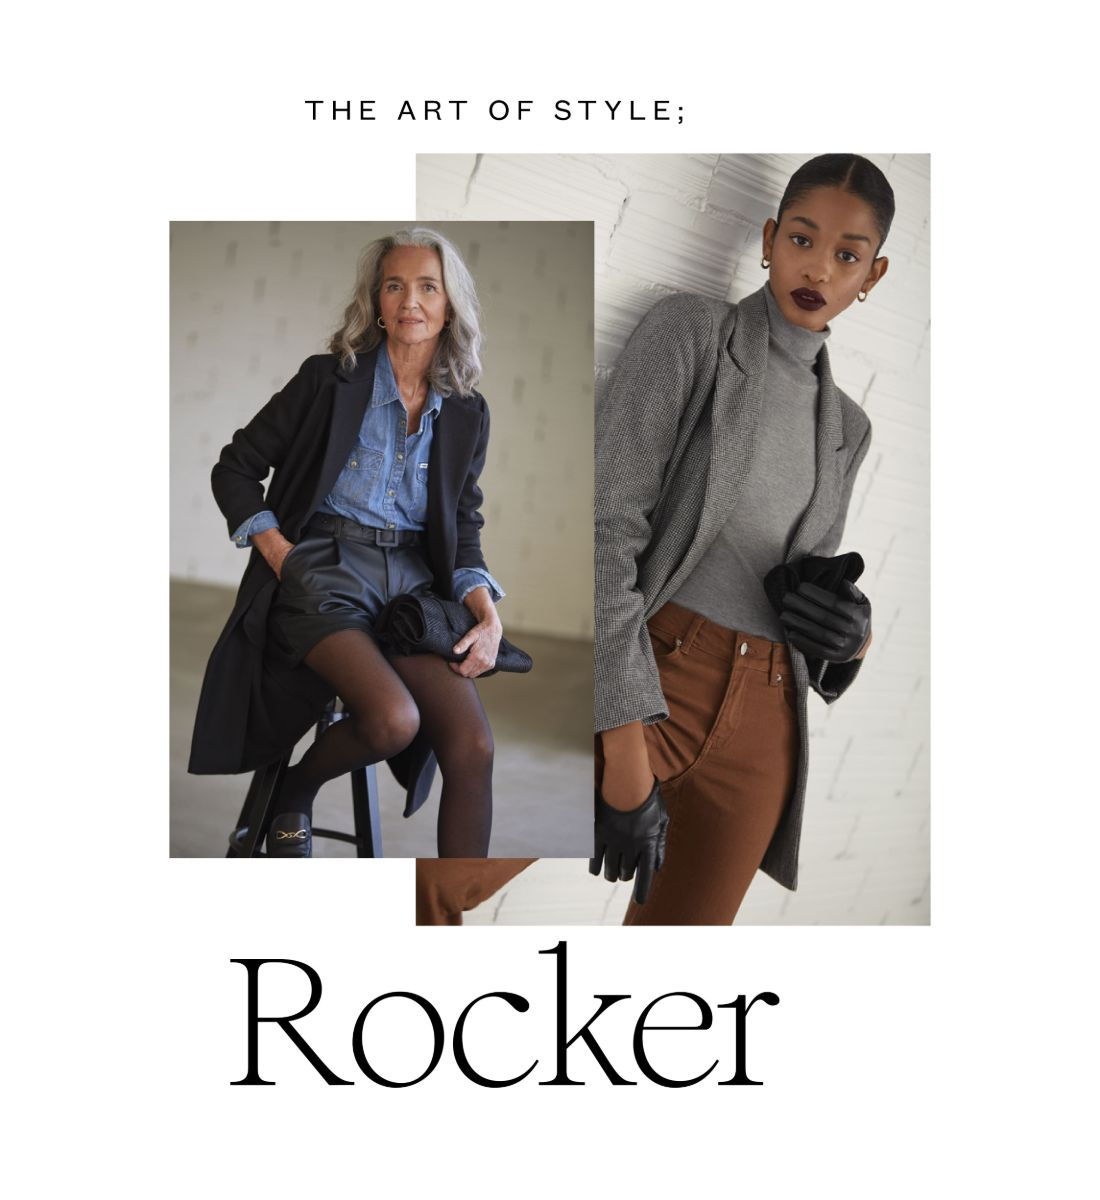 What is rock chic style?